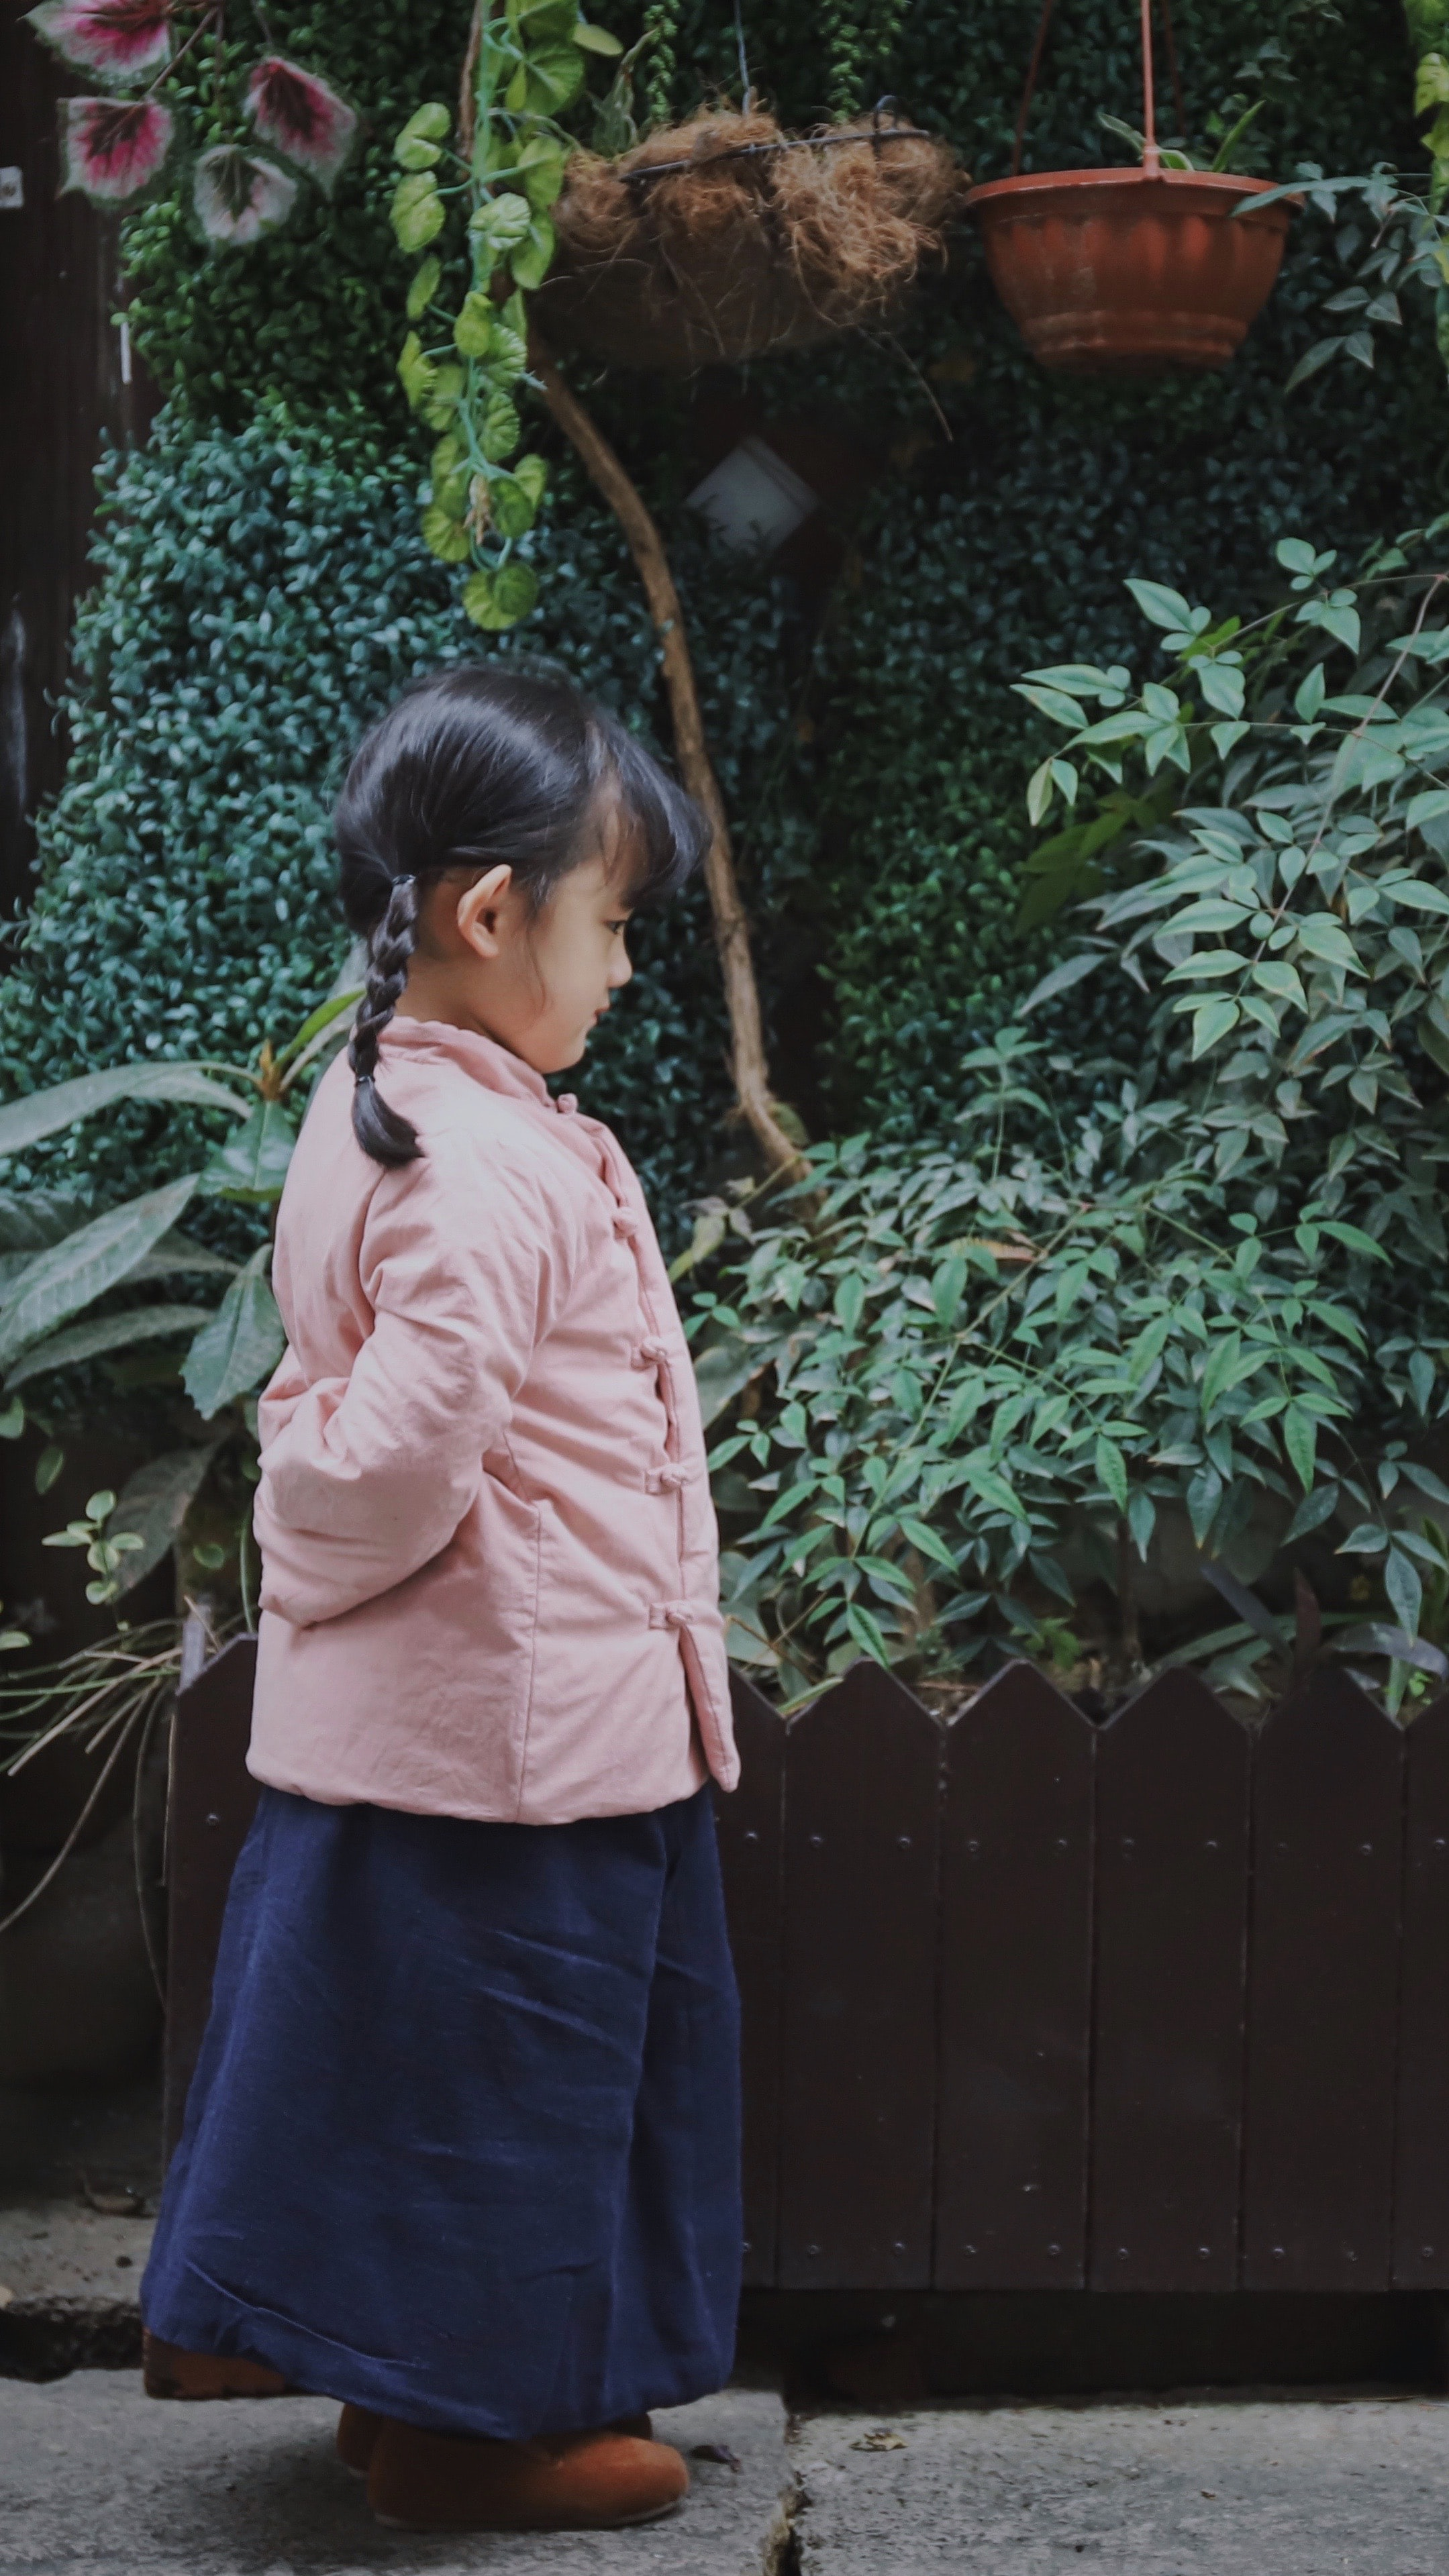 girl standing in front of garden